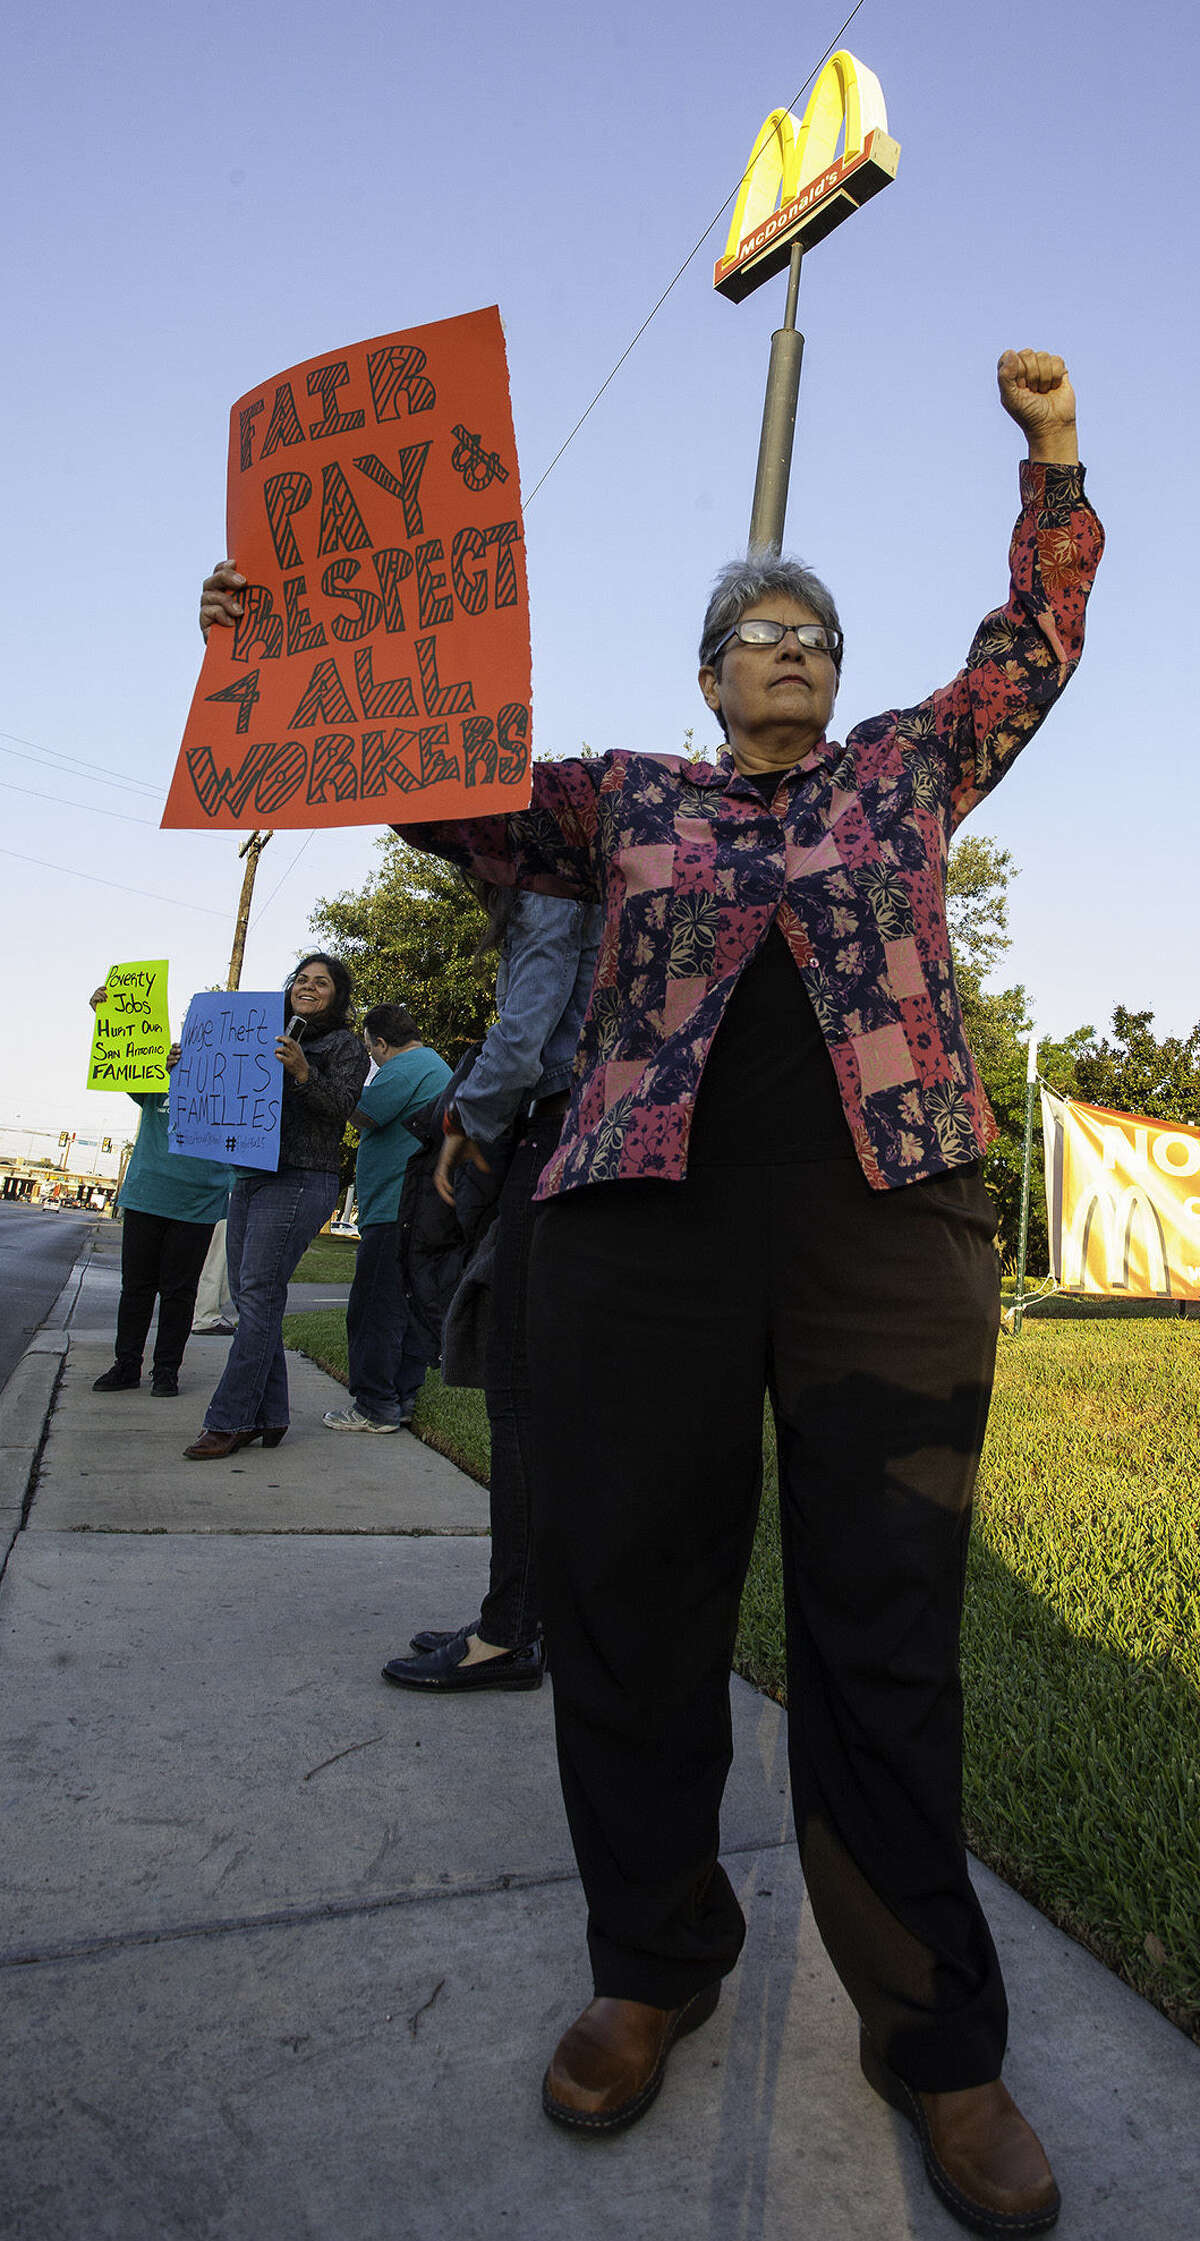 Irasema Cavazos is among the labor activists and fast-food workers staging a protest calling for a $15 minimum wage and the right of fast-food workers to form a union, outside a McDonald's in the 8600 block of Broadway.